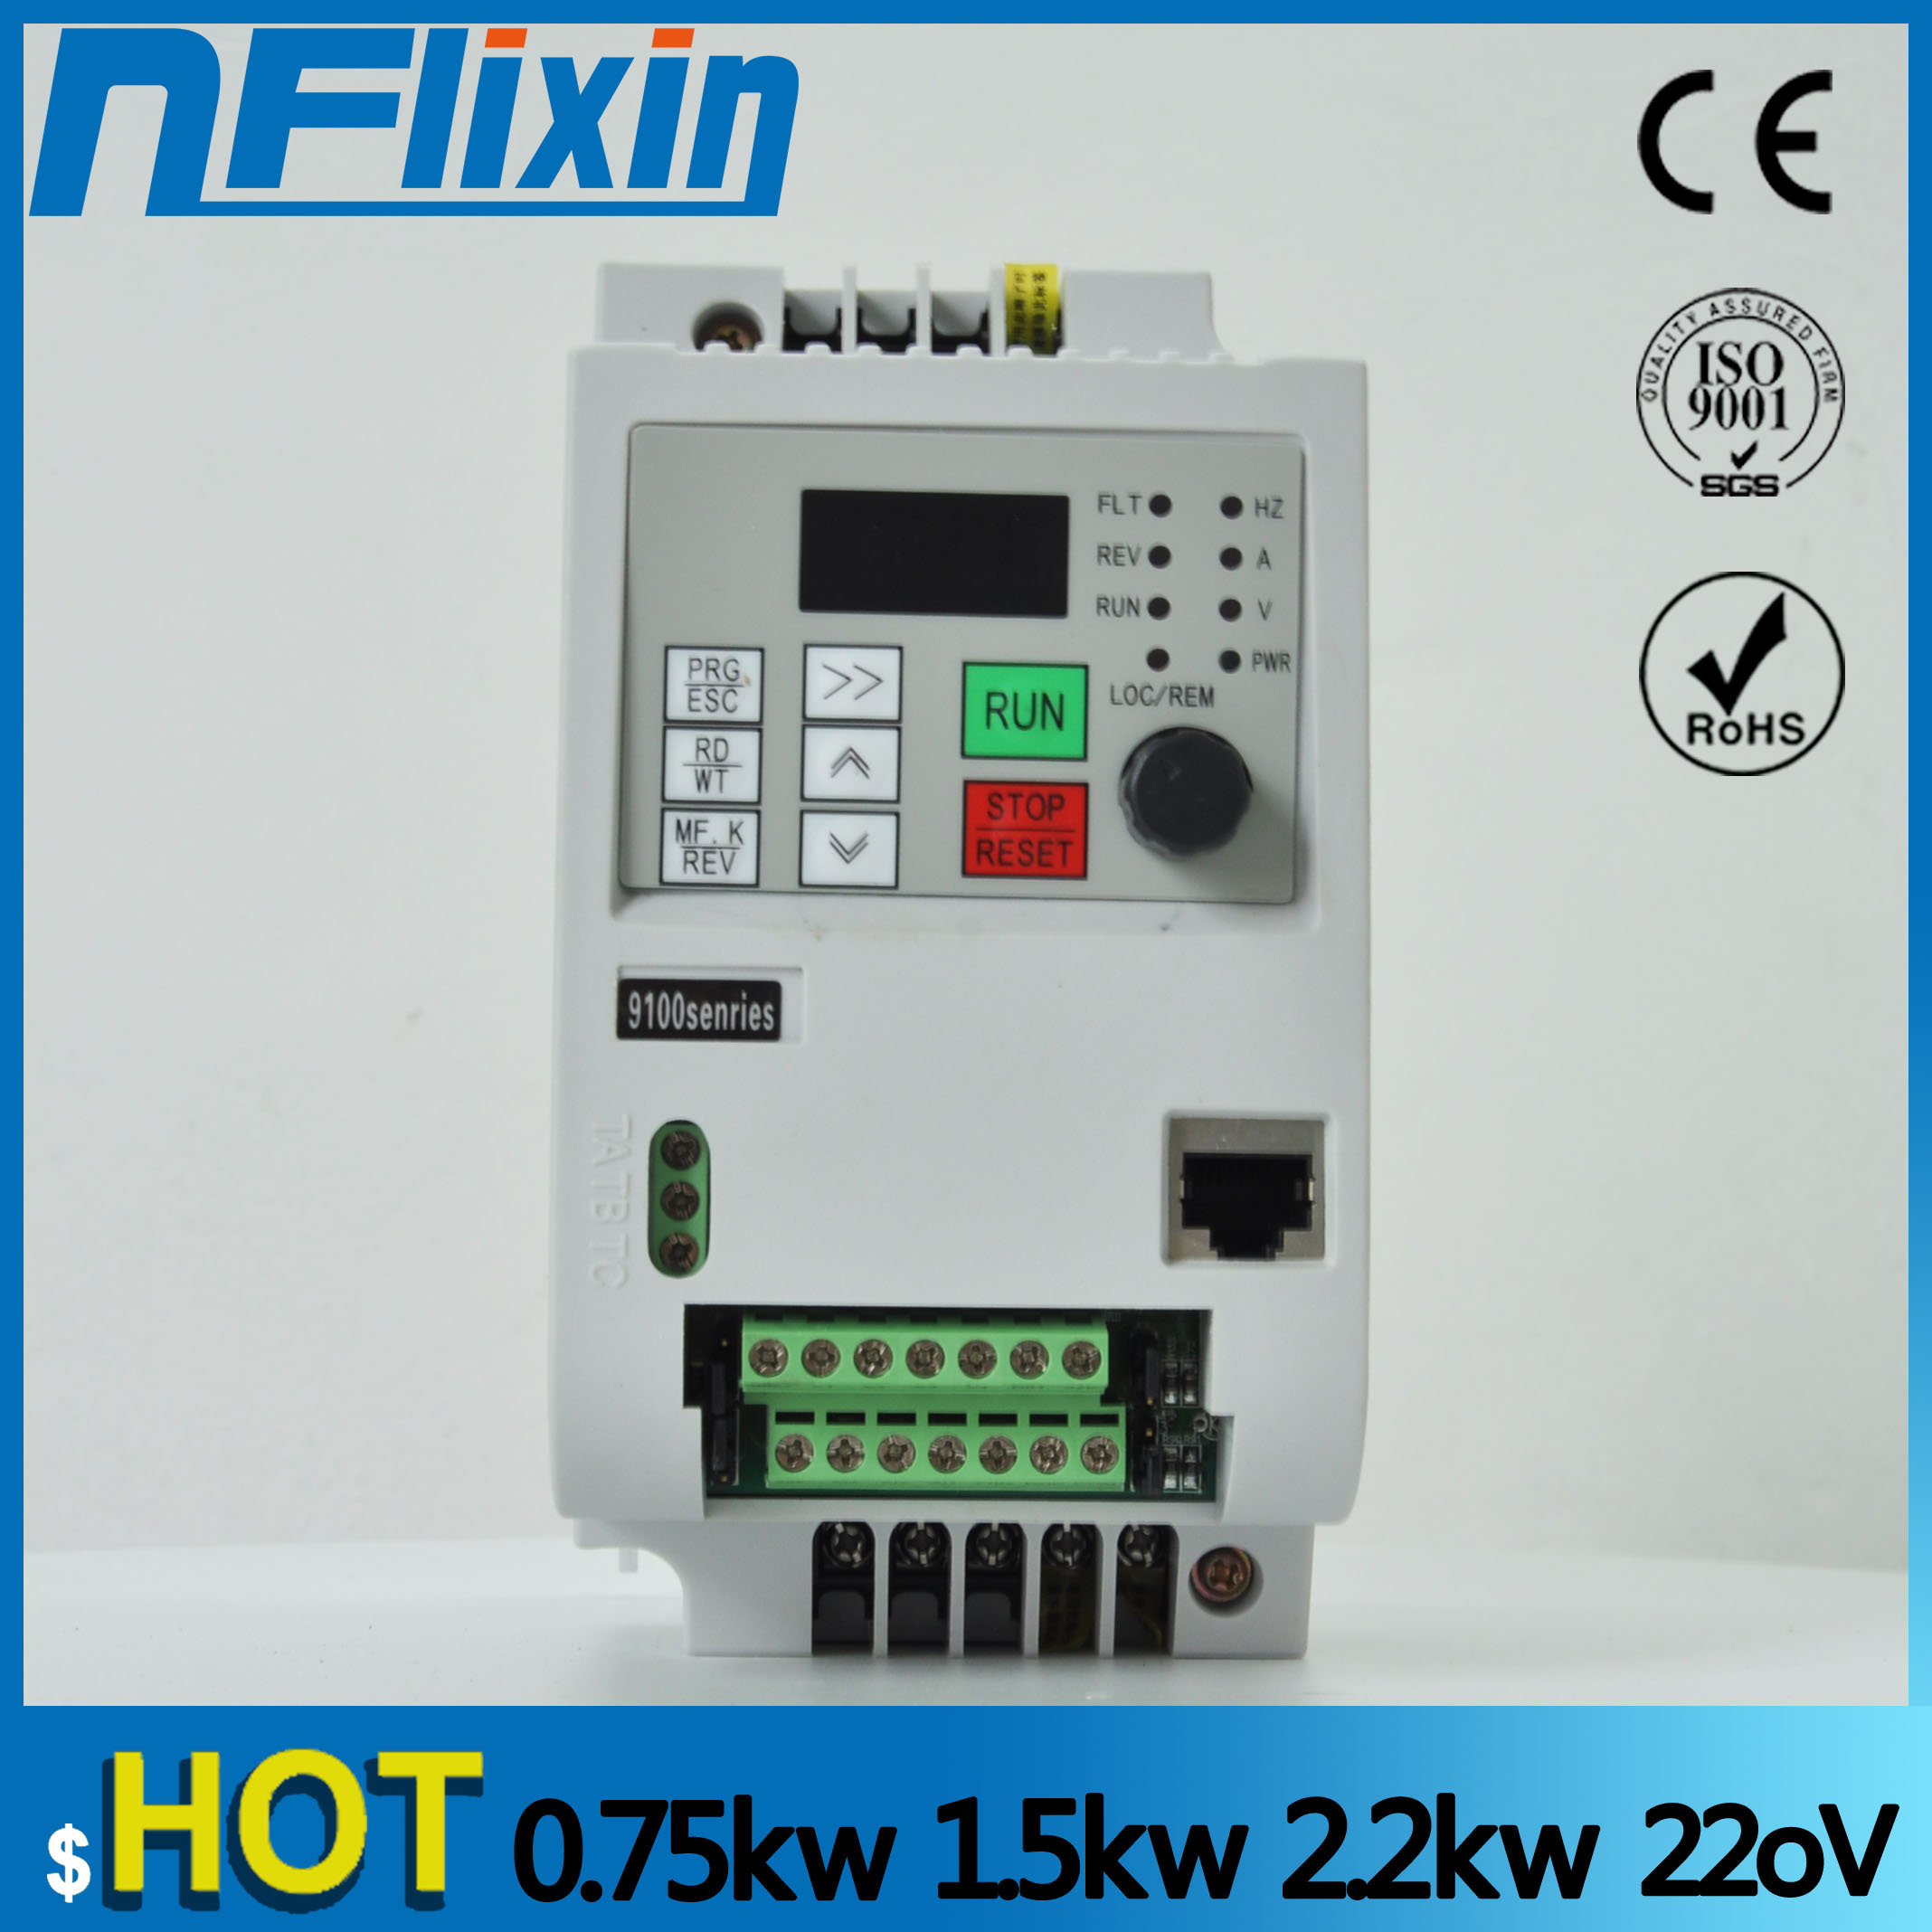 For Russian NF 220v 1.5kw/2.2/4kw 1 phase input and 3 phase output frequency converter/ ac motor drive/ VSD/ VFD/ 50HZ InverterFor Russian NF 220v 1.5kw/2.2/4kw 1 phase input and 3 phase output frequency converter/ ac motor drive/ VSD/ VFD/ 50HZ Inverter